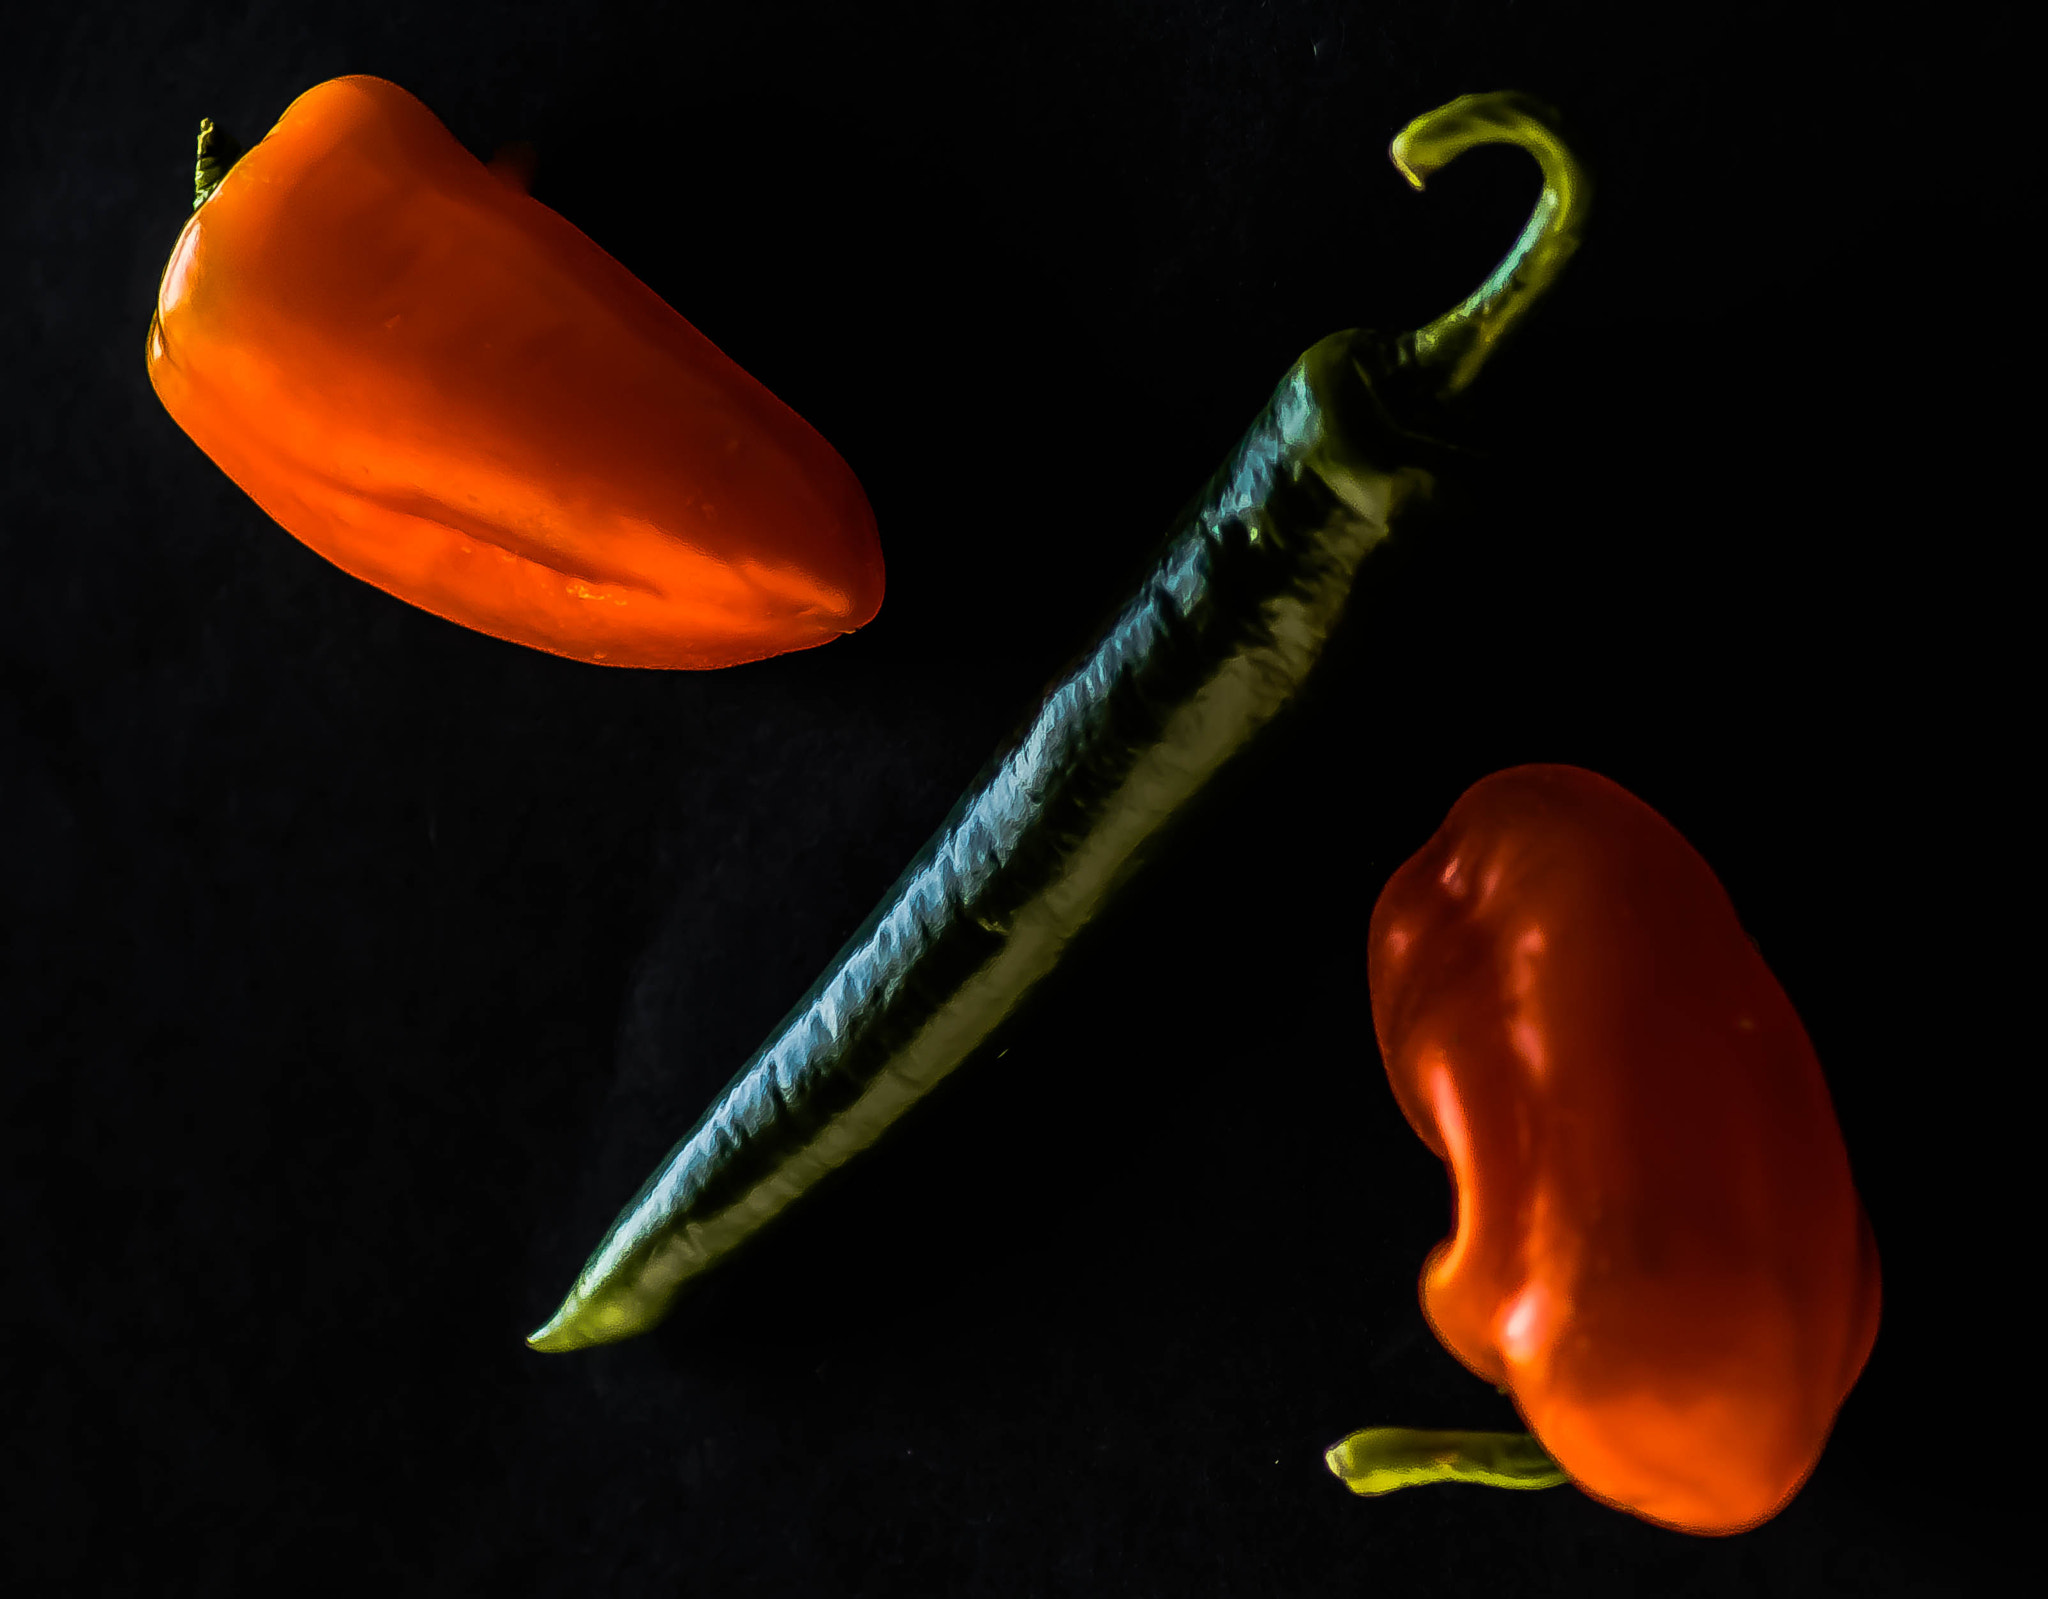 Photograph Red Hot Chilli Peppers by julian john on 500px